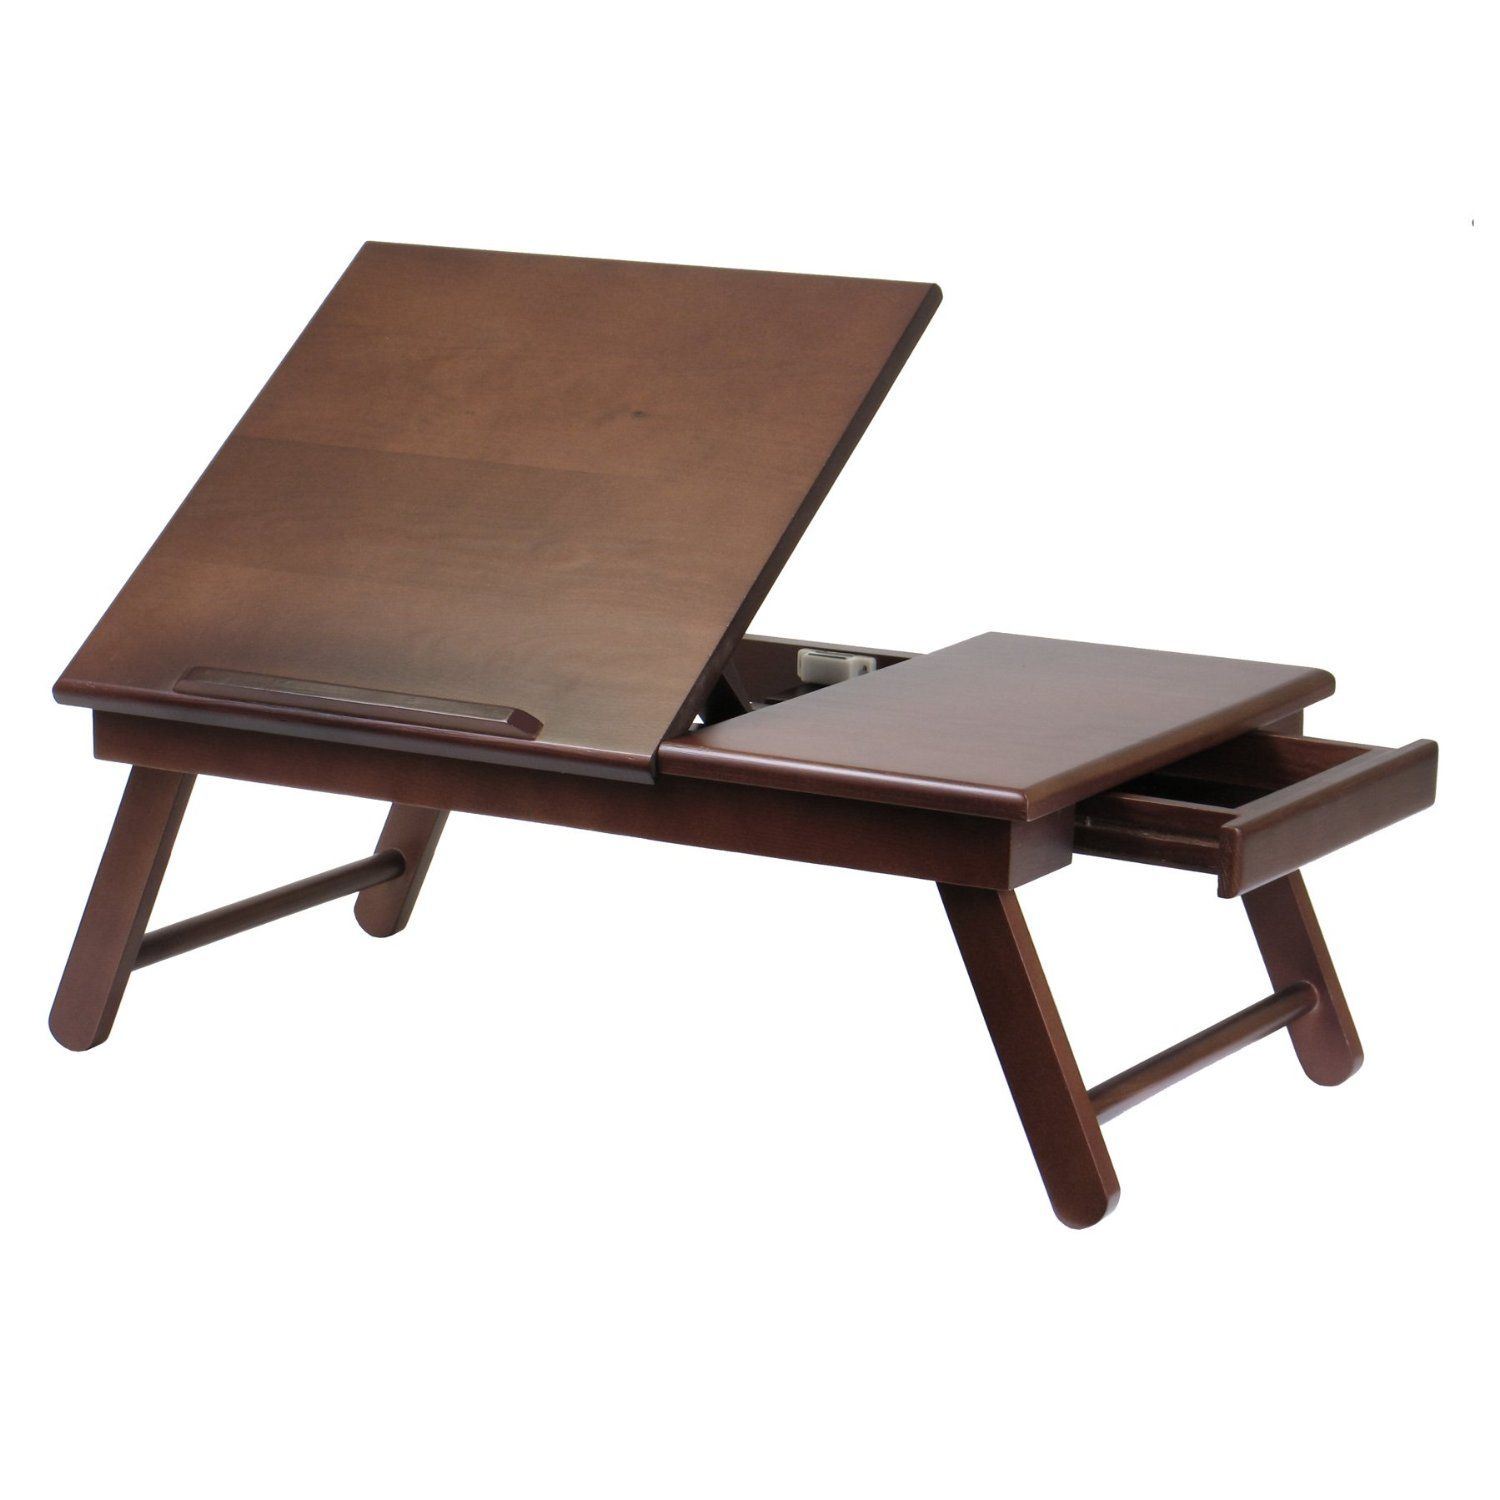 desk good table tray bed lap breakfast plastic laptop for couch in